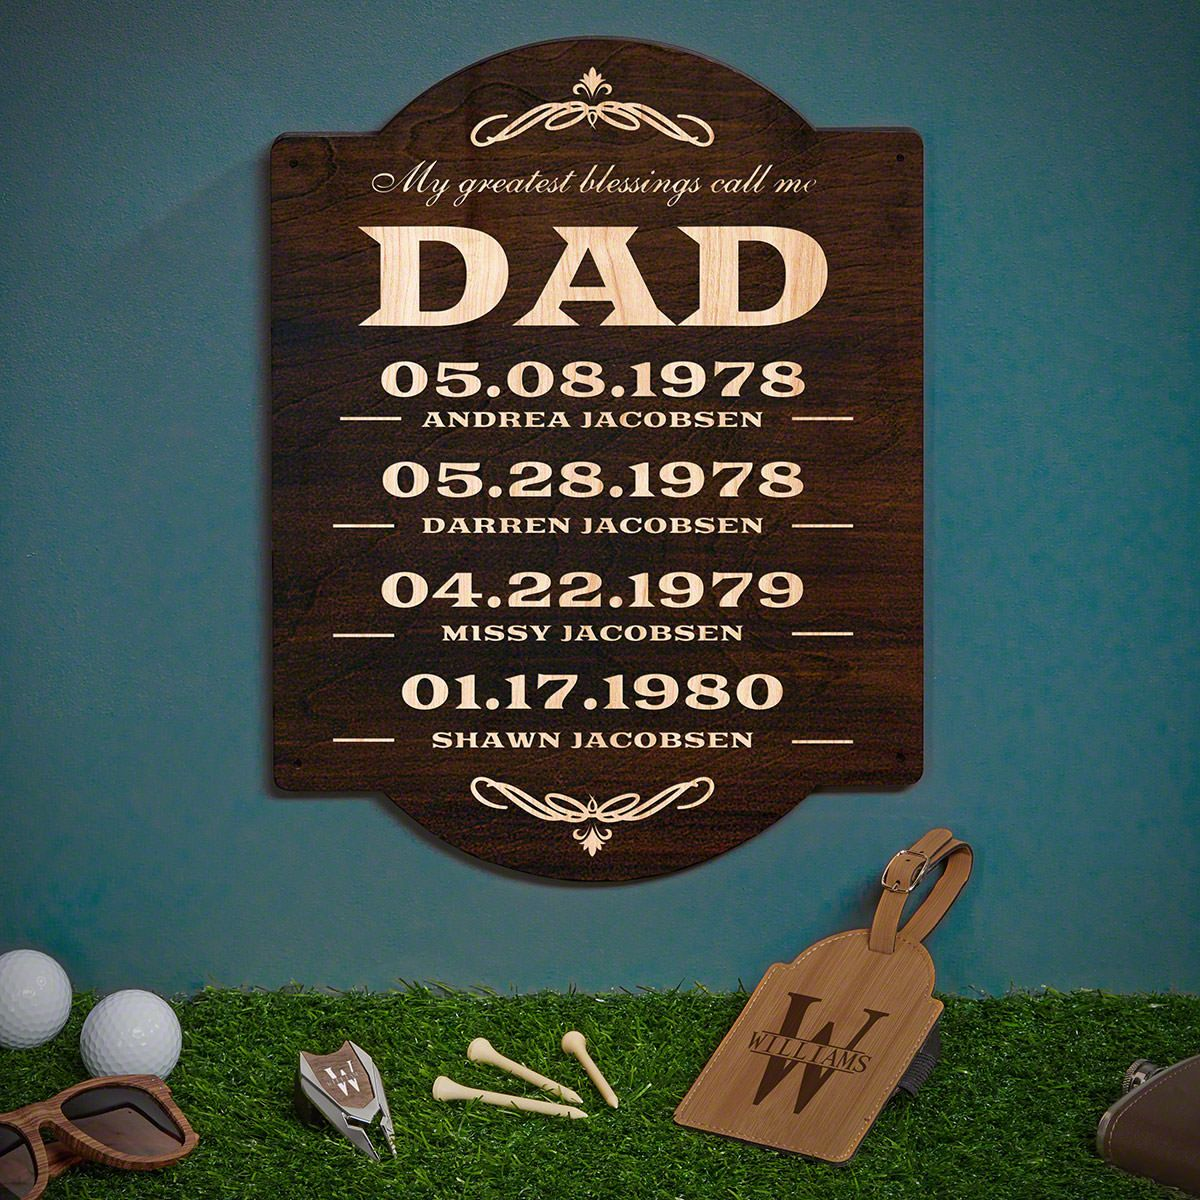 Dad's Greatest Blessings (Signature Series) Oakmont Custom Golf Gifts for Dad